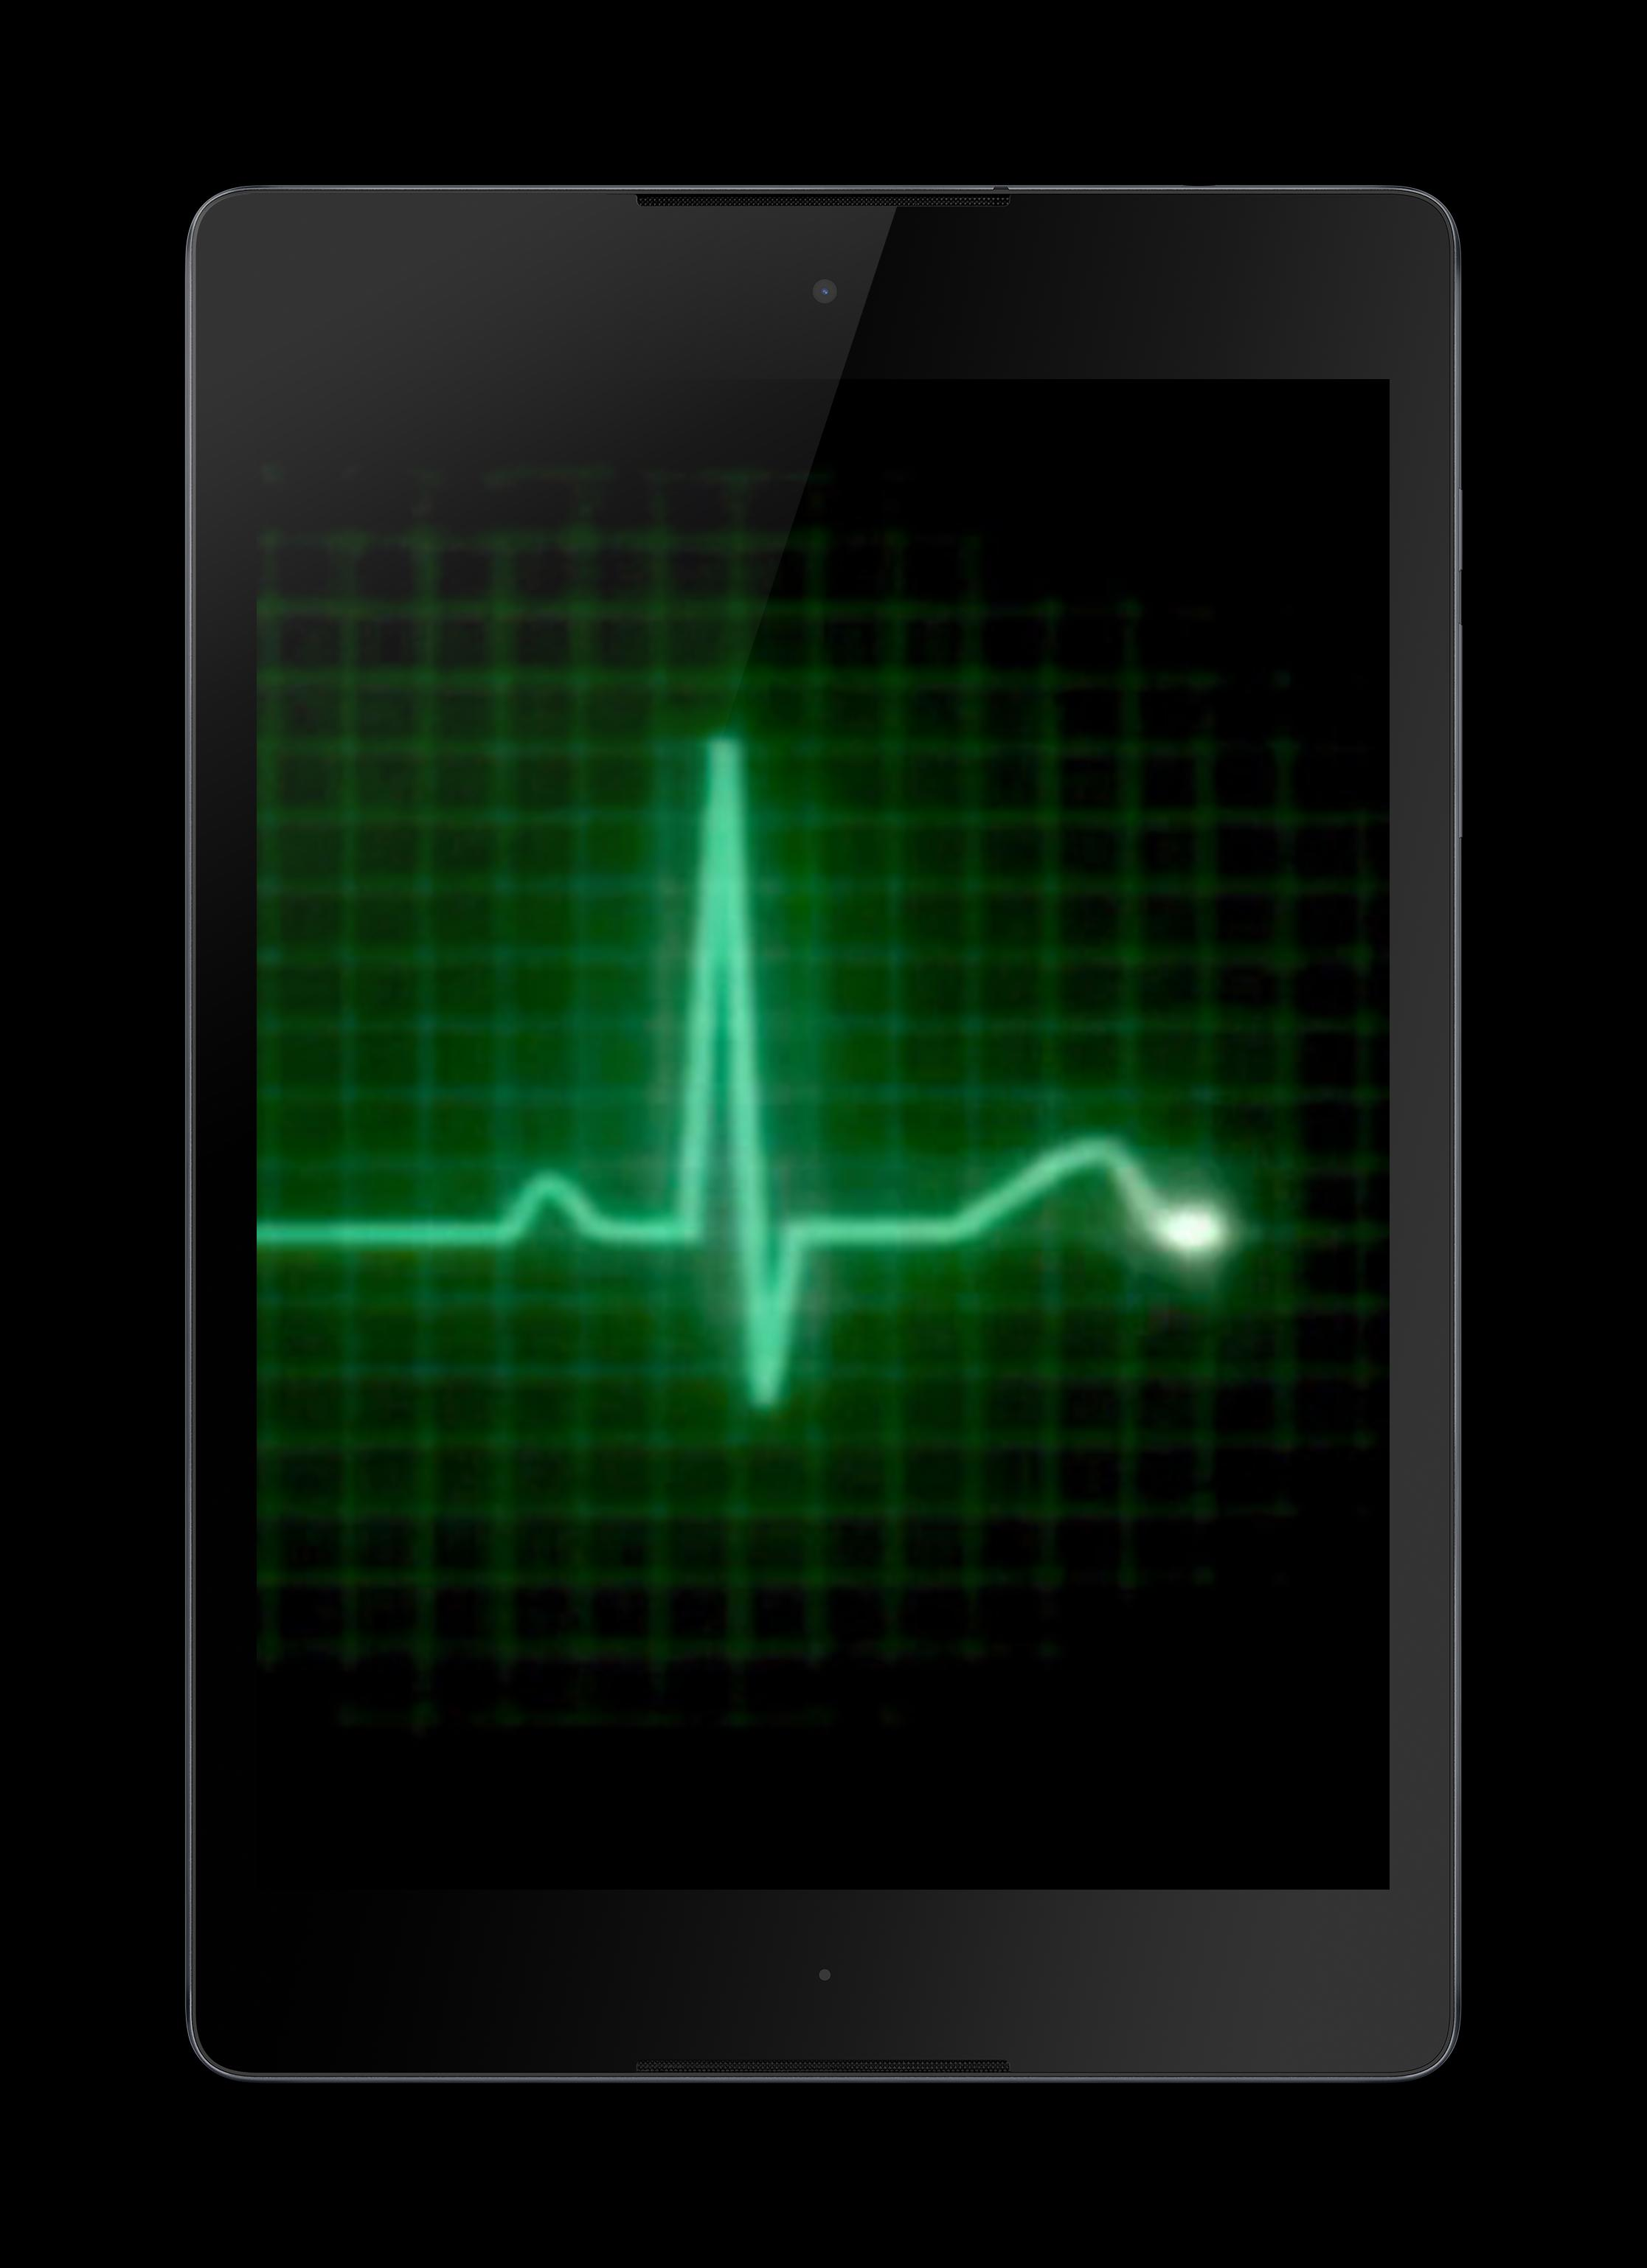 Heartbeat Live Wallpaper For Android Apk Download